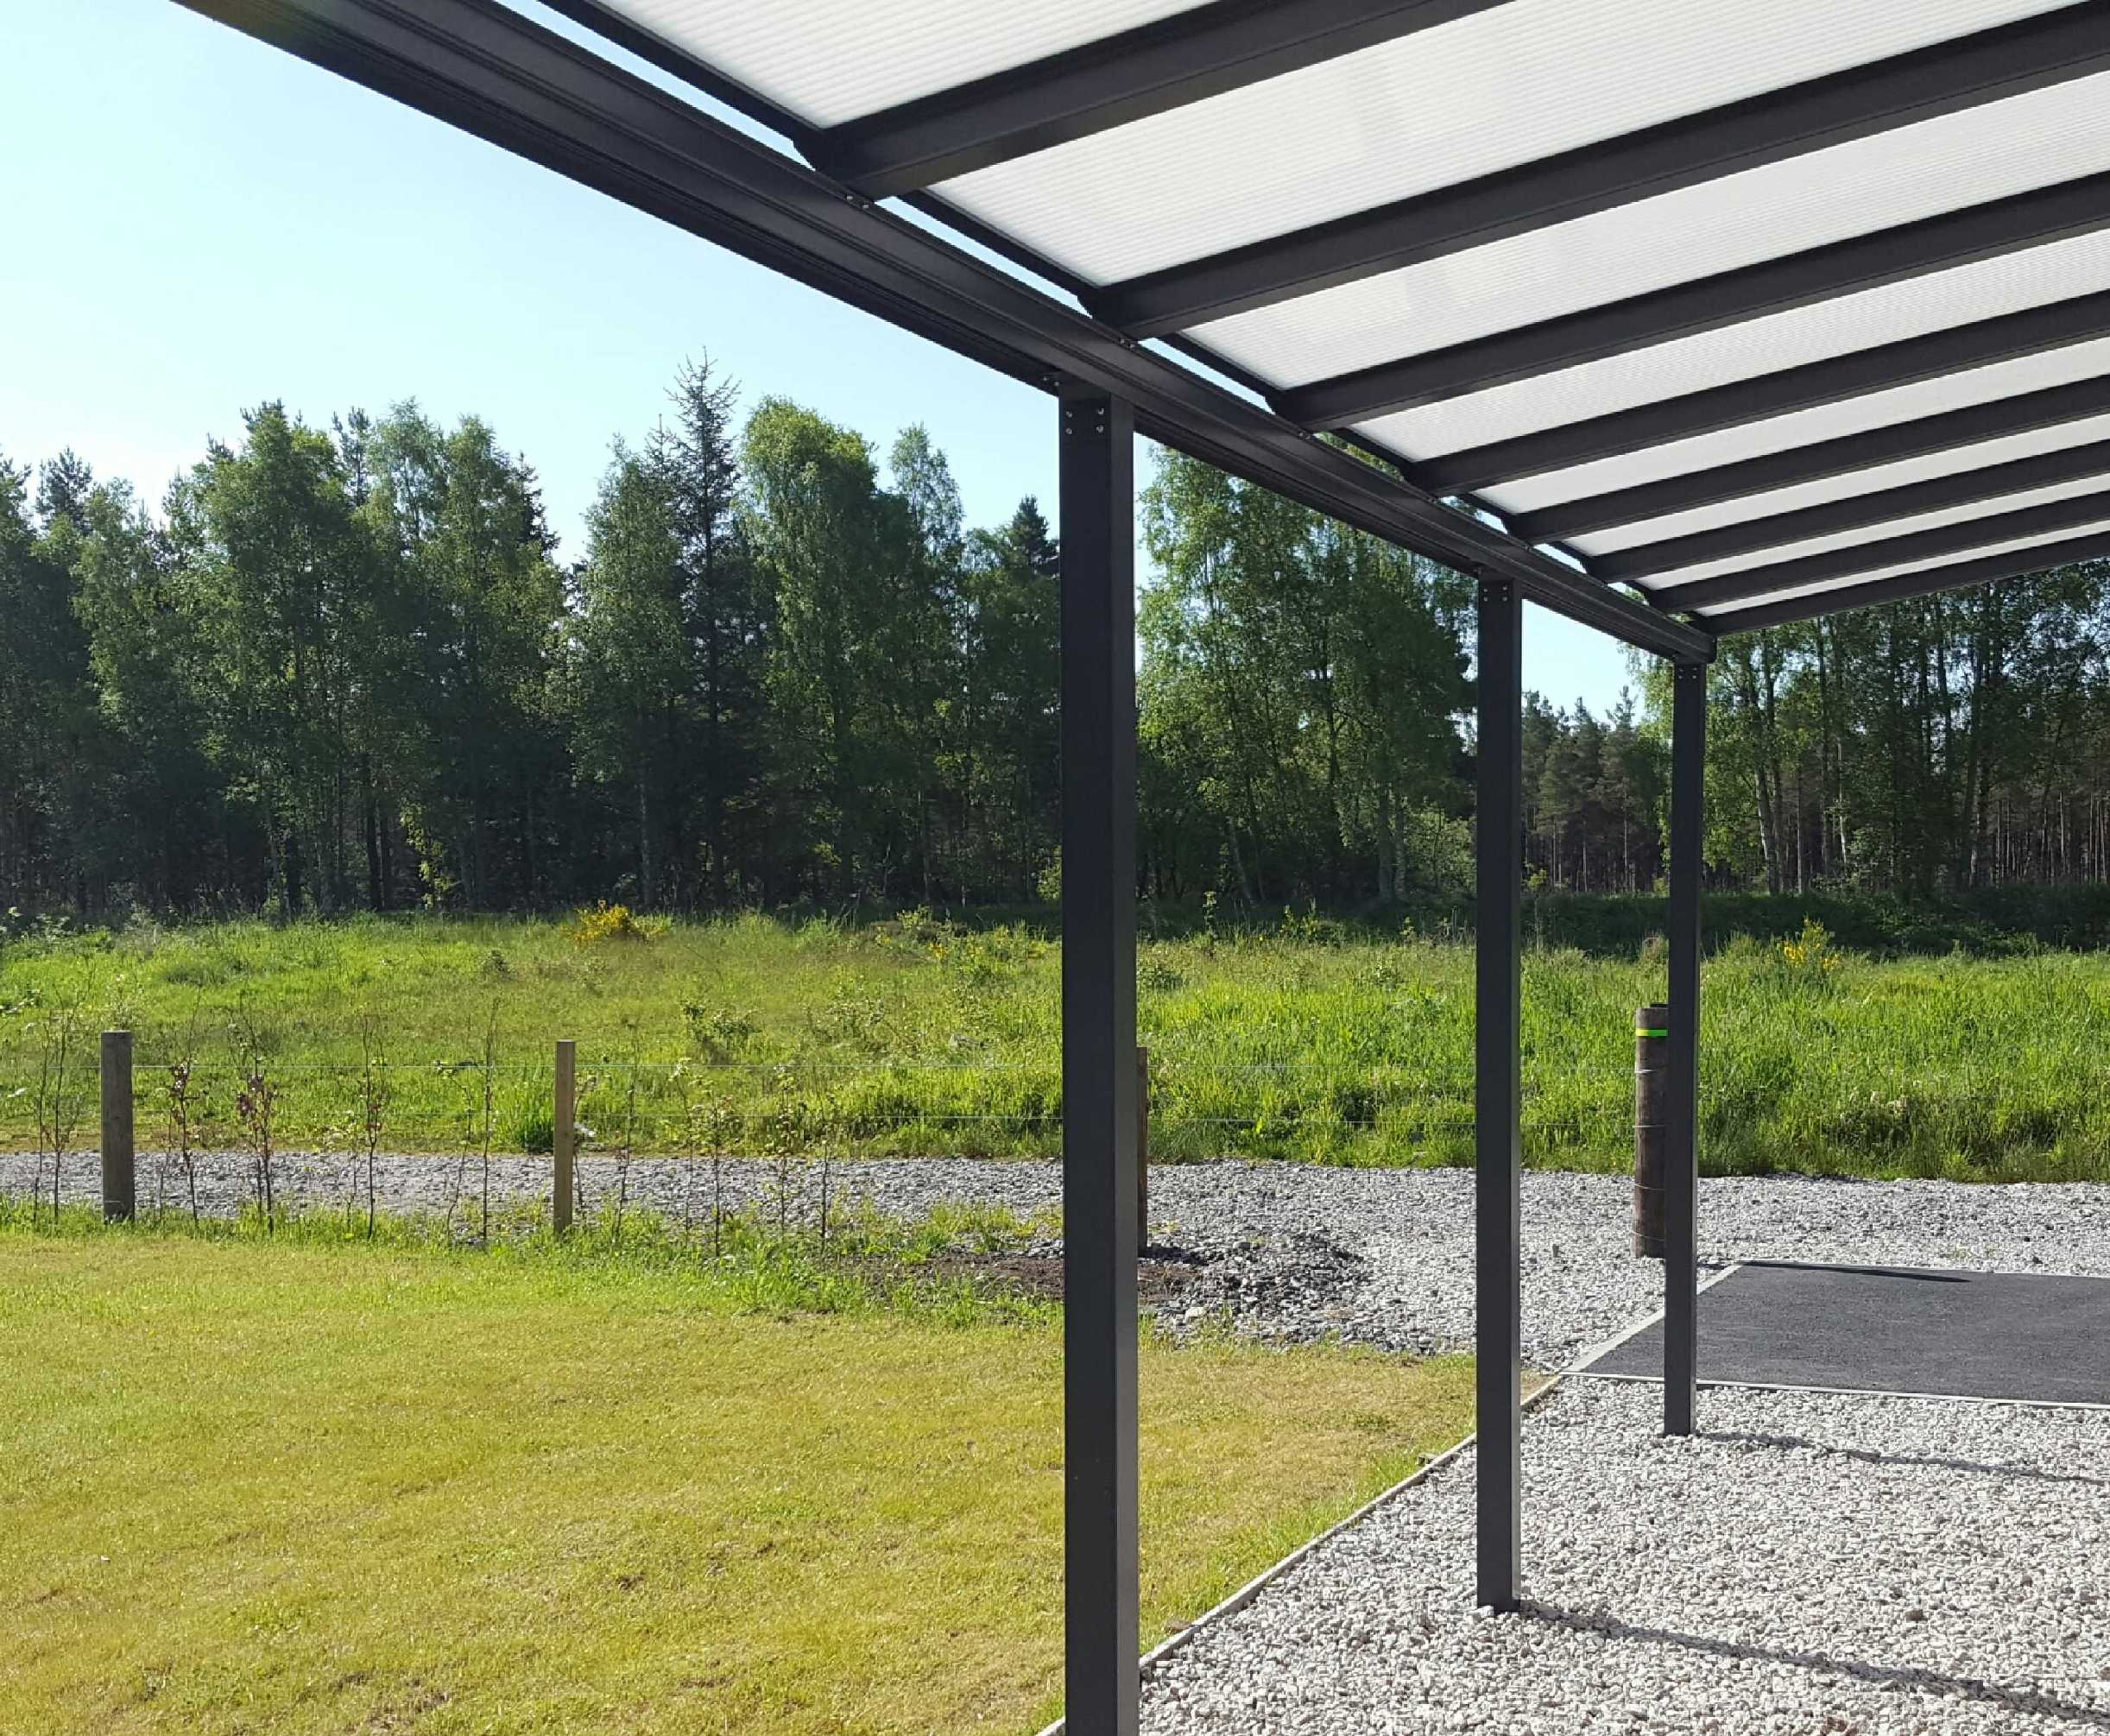 Omega Smart Lean-To Canopy, Anthracite Grey, 16mm Polycarbonate Glazing - 6.3m (W) x 2.5m (P), (4) Supporting Posts